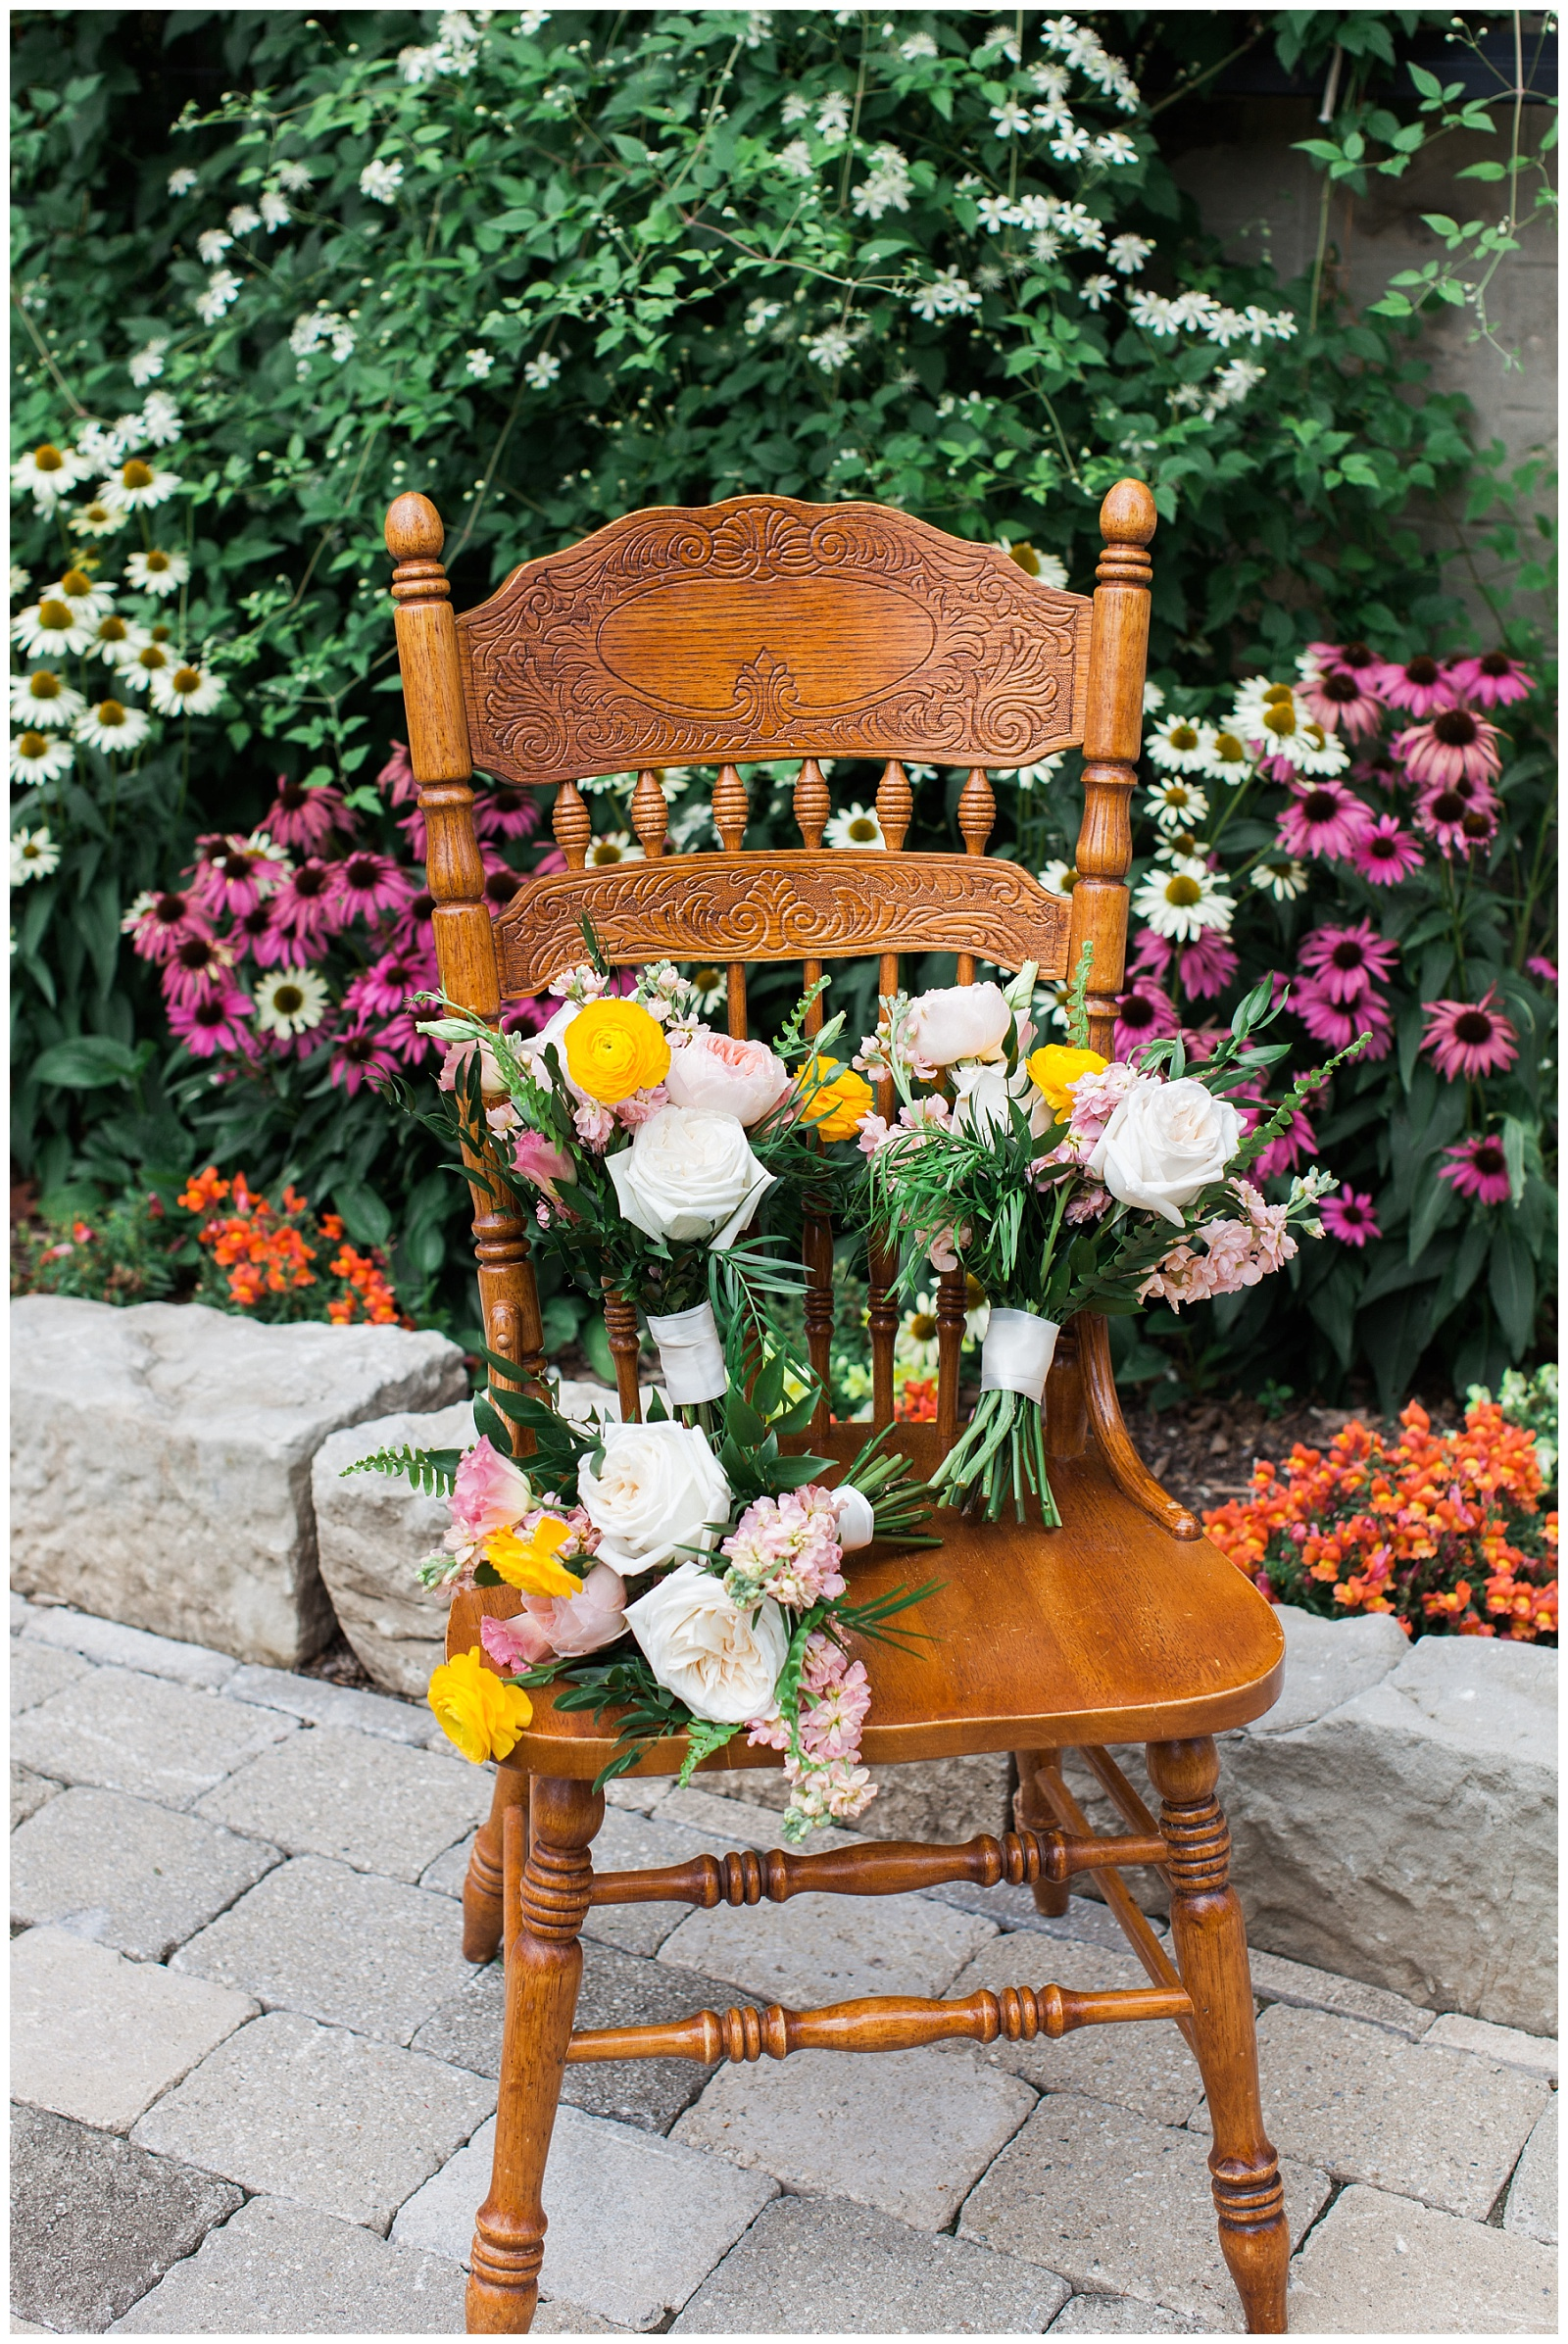 Flower bouquet on antique chair at Guelph Ontario Wedding | Ontario Wedding Photographer | Toronto Wedding Photographer | 3photography